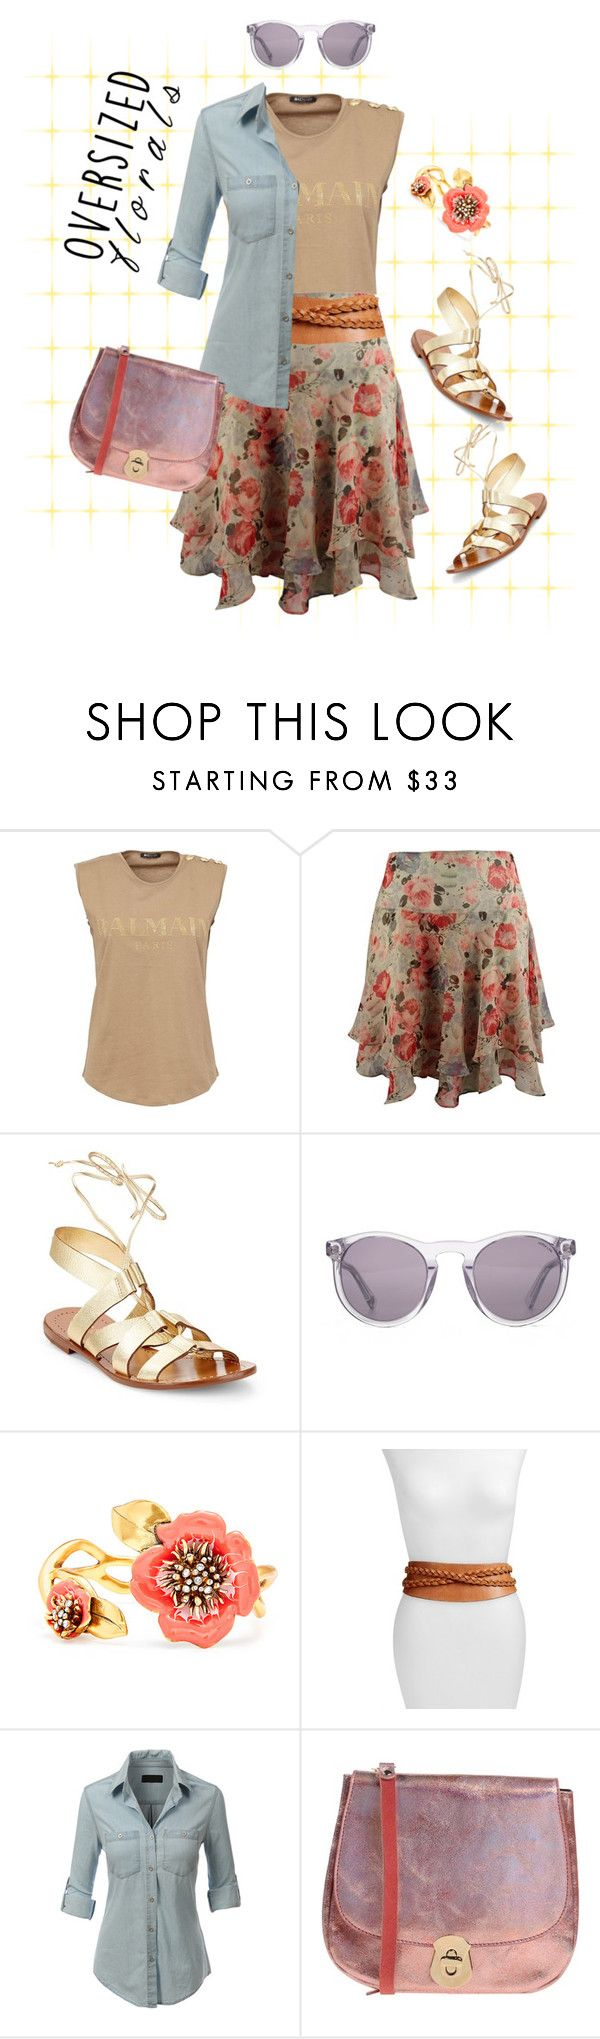 """Oversized Florals"" by lence-59 ❤ liked on Polyvore featuring Balmain, Kate Spade, HOOK LDN, Oscar de la Renta, Ada, LE3NO and Suoli"